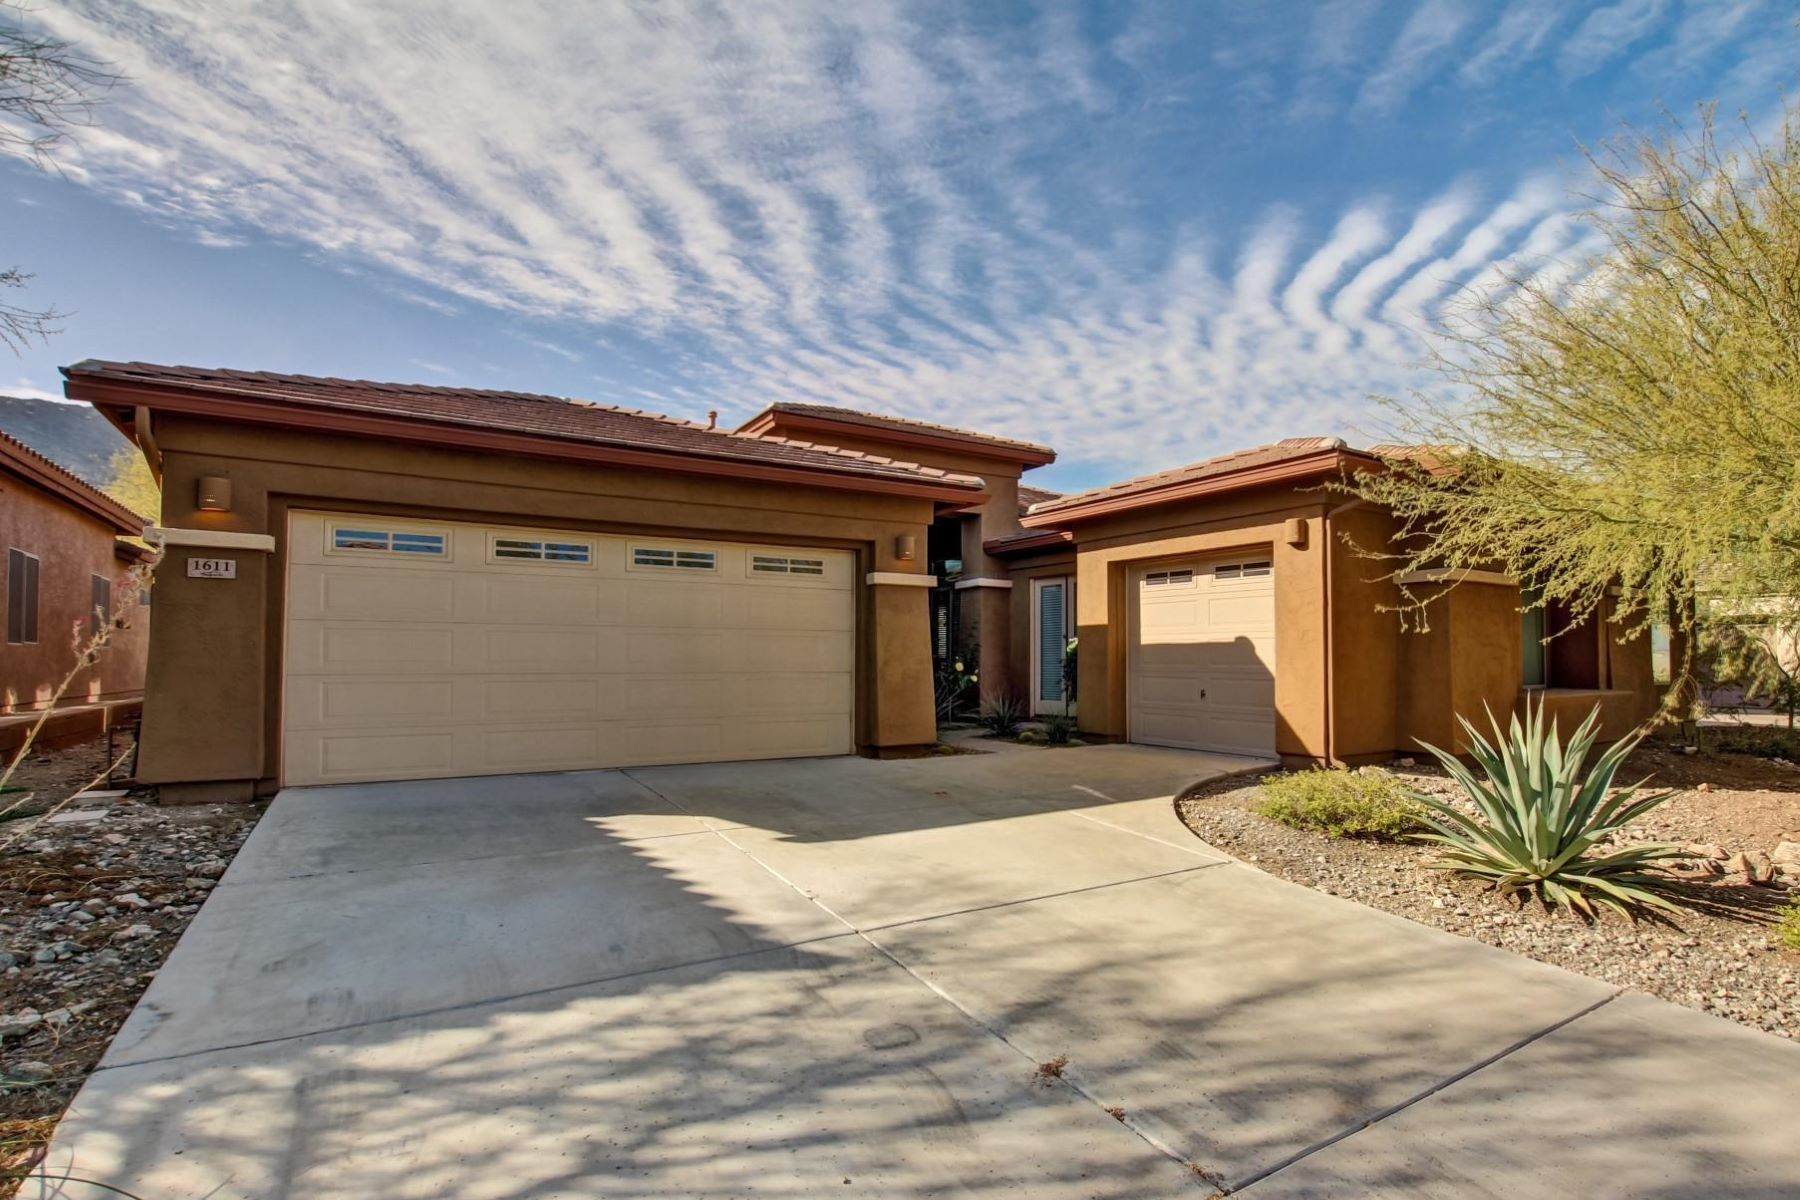 Single Family Home for Sale at Fantastic home with expansive views 1611 W Lodge Drive, Phoenix, Arizona, 85041 United States